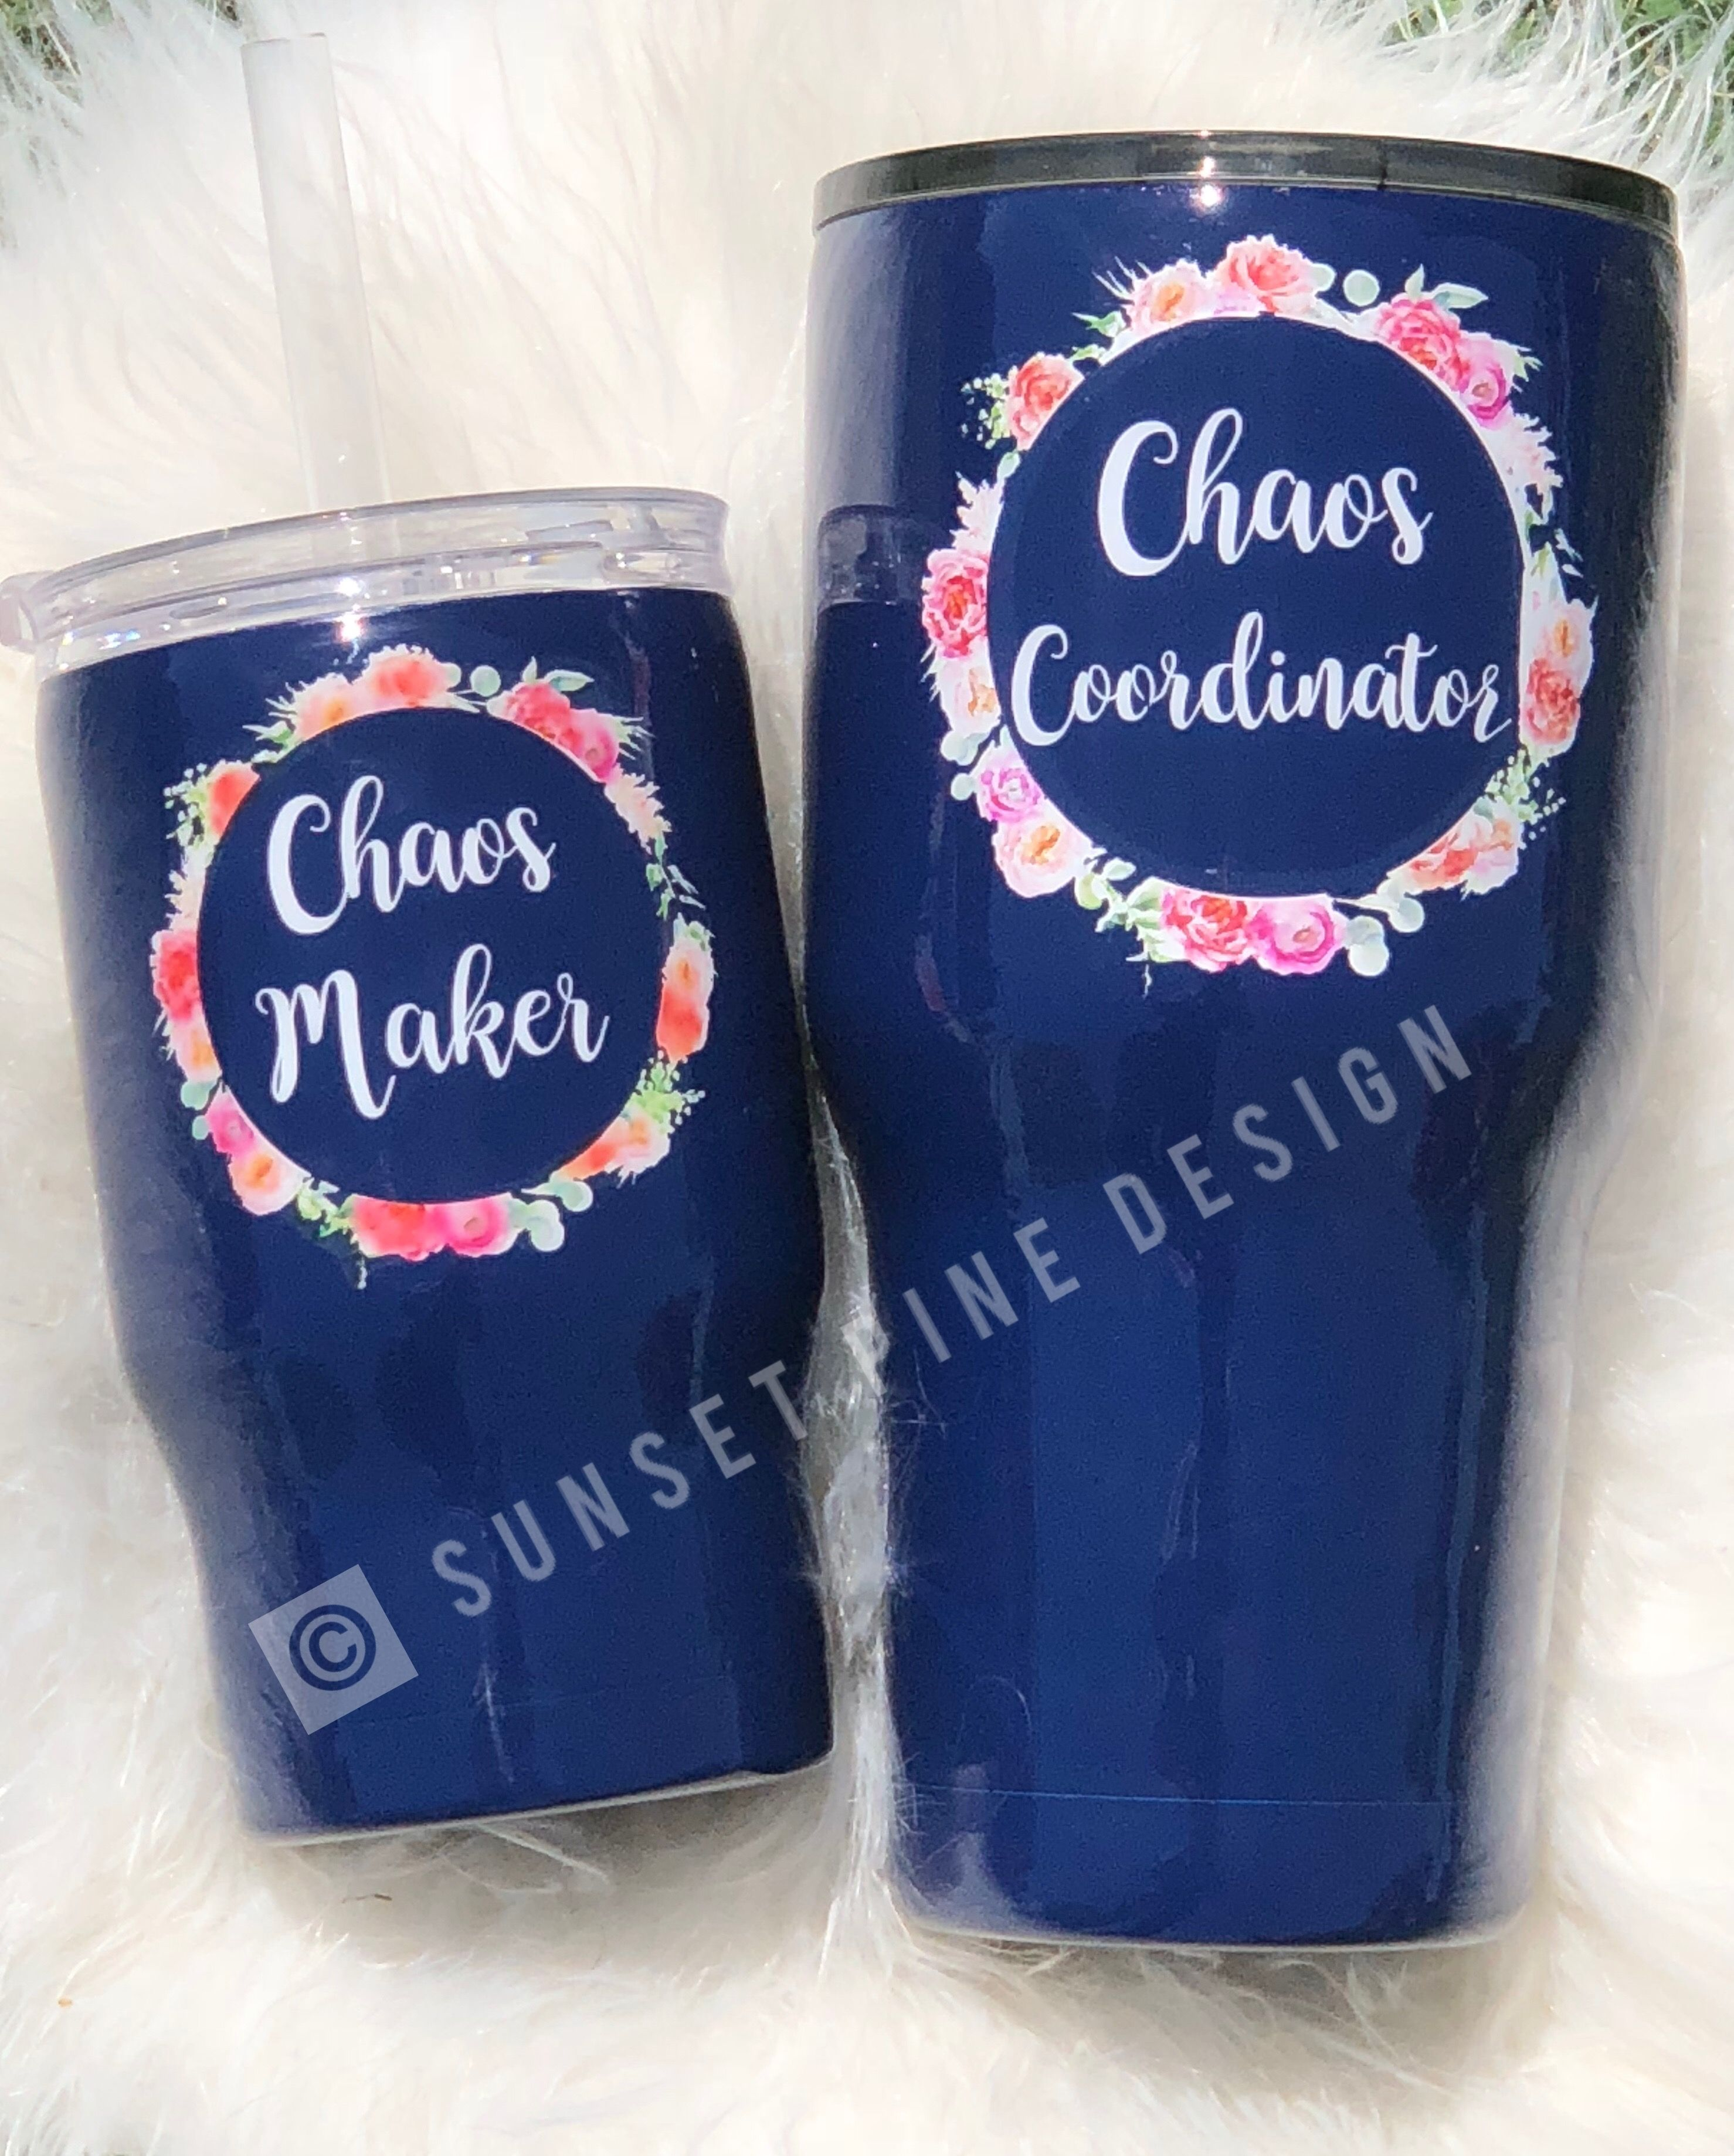 a1ad2a5ea86 Chaos Maker/Chaos Coordinator Mommy and Me Tumbler set! Can be customized  for you! Made to order! #customtumblers #mommyandme #sunsetpinedesign ...